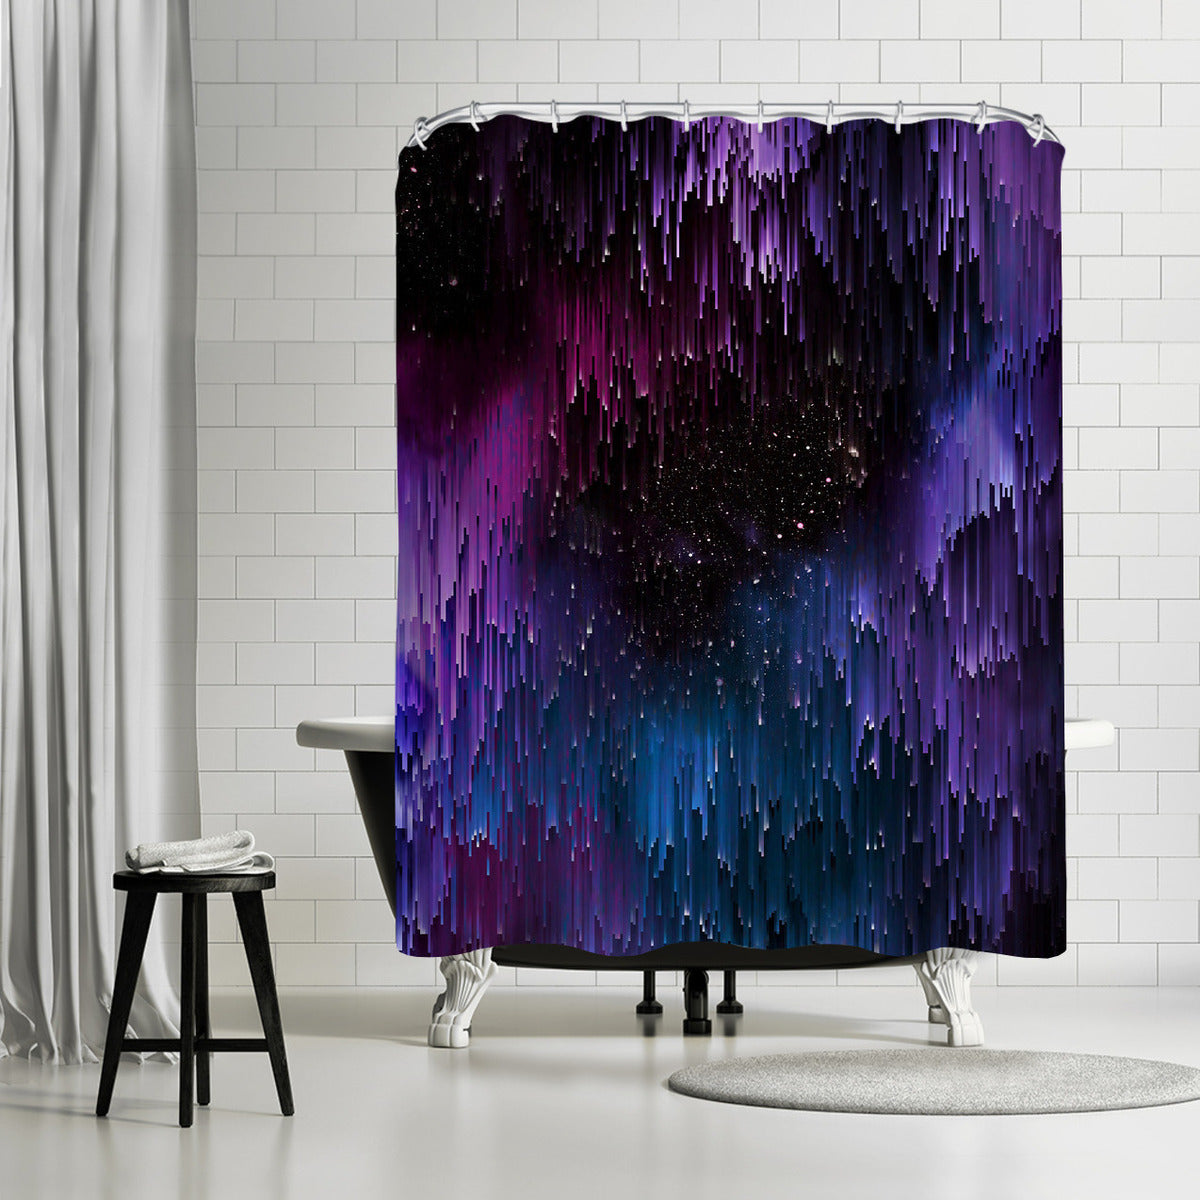 Ultraviolet Glitch Galaxy by Emanuela Carratoni Shower Curtain - Shower Curtain - Americanflat